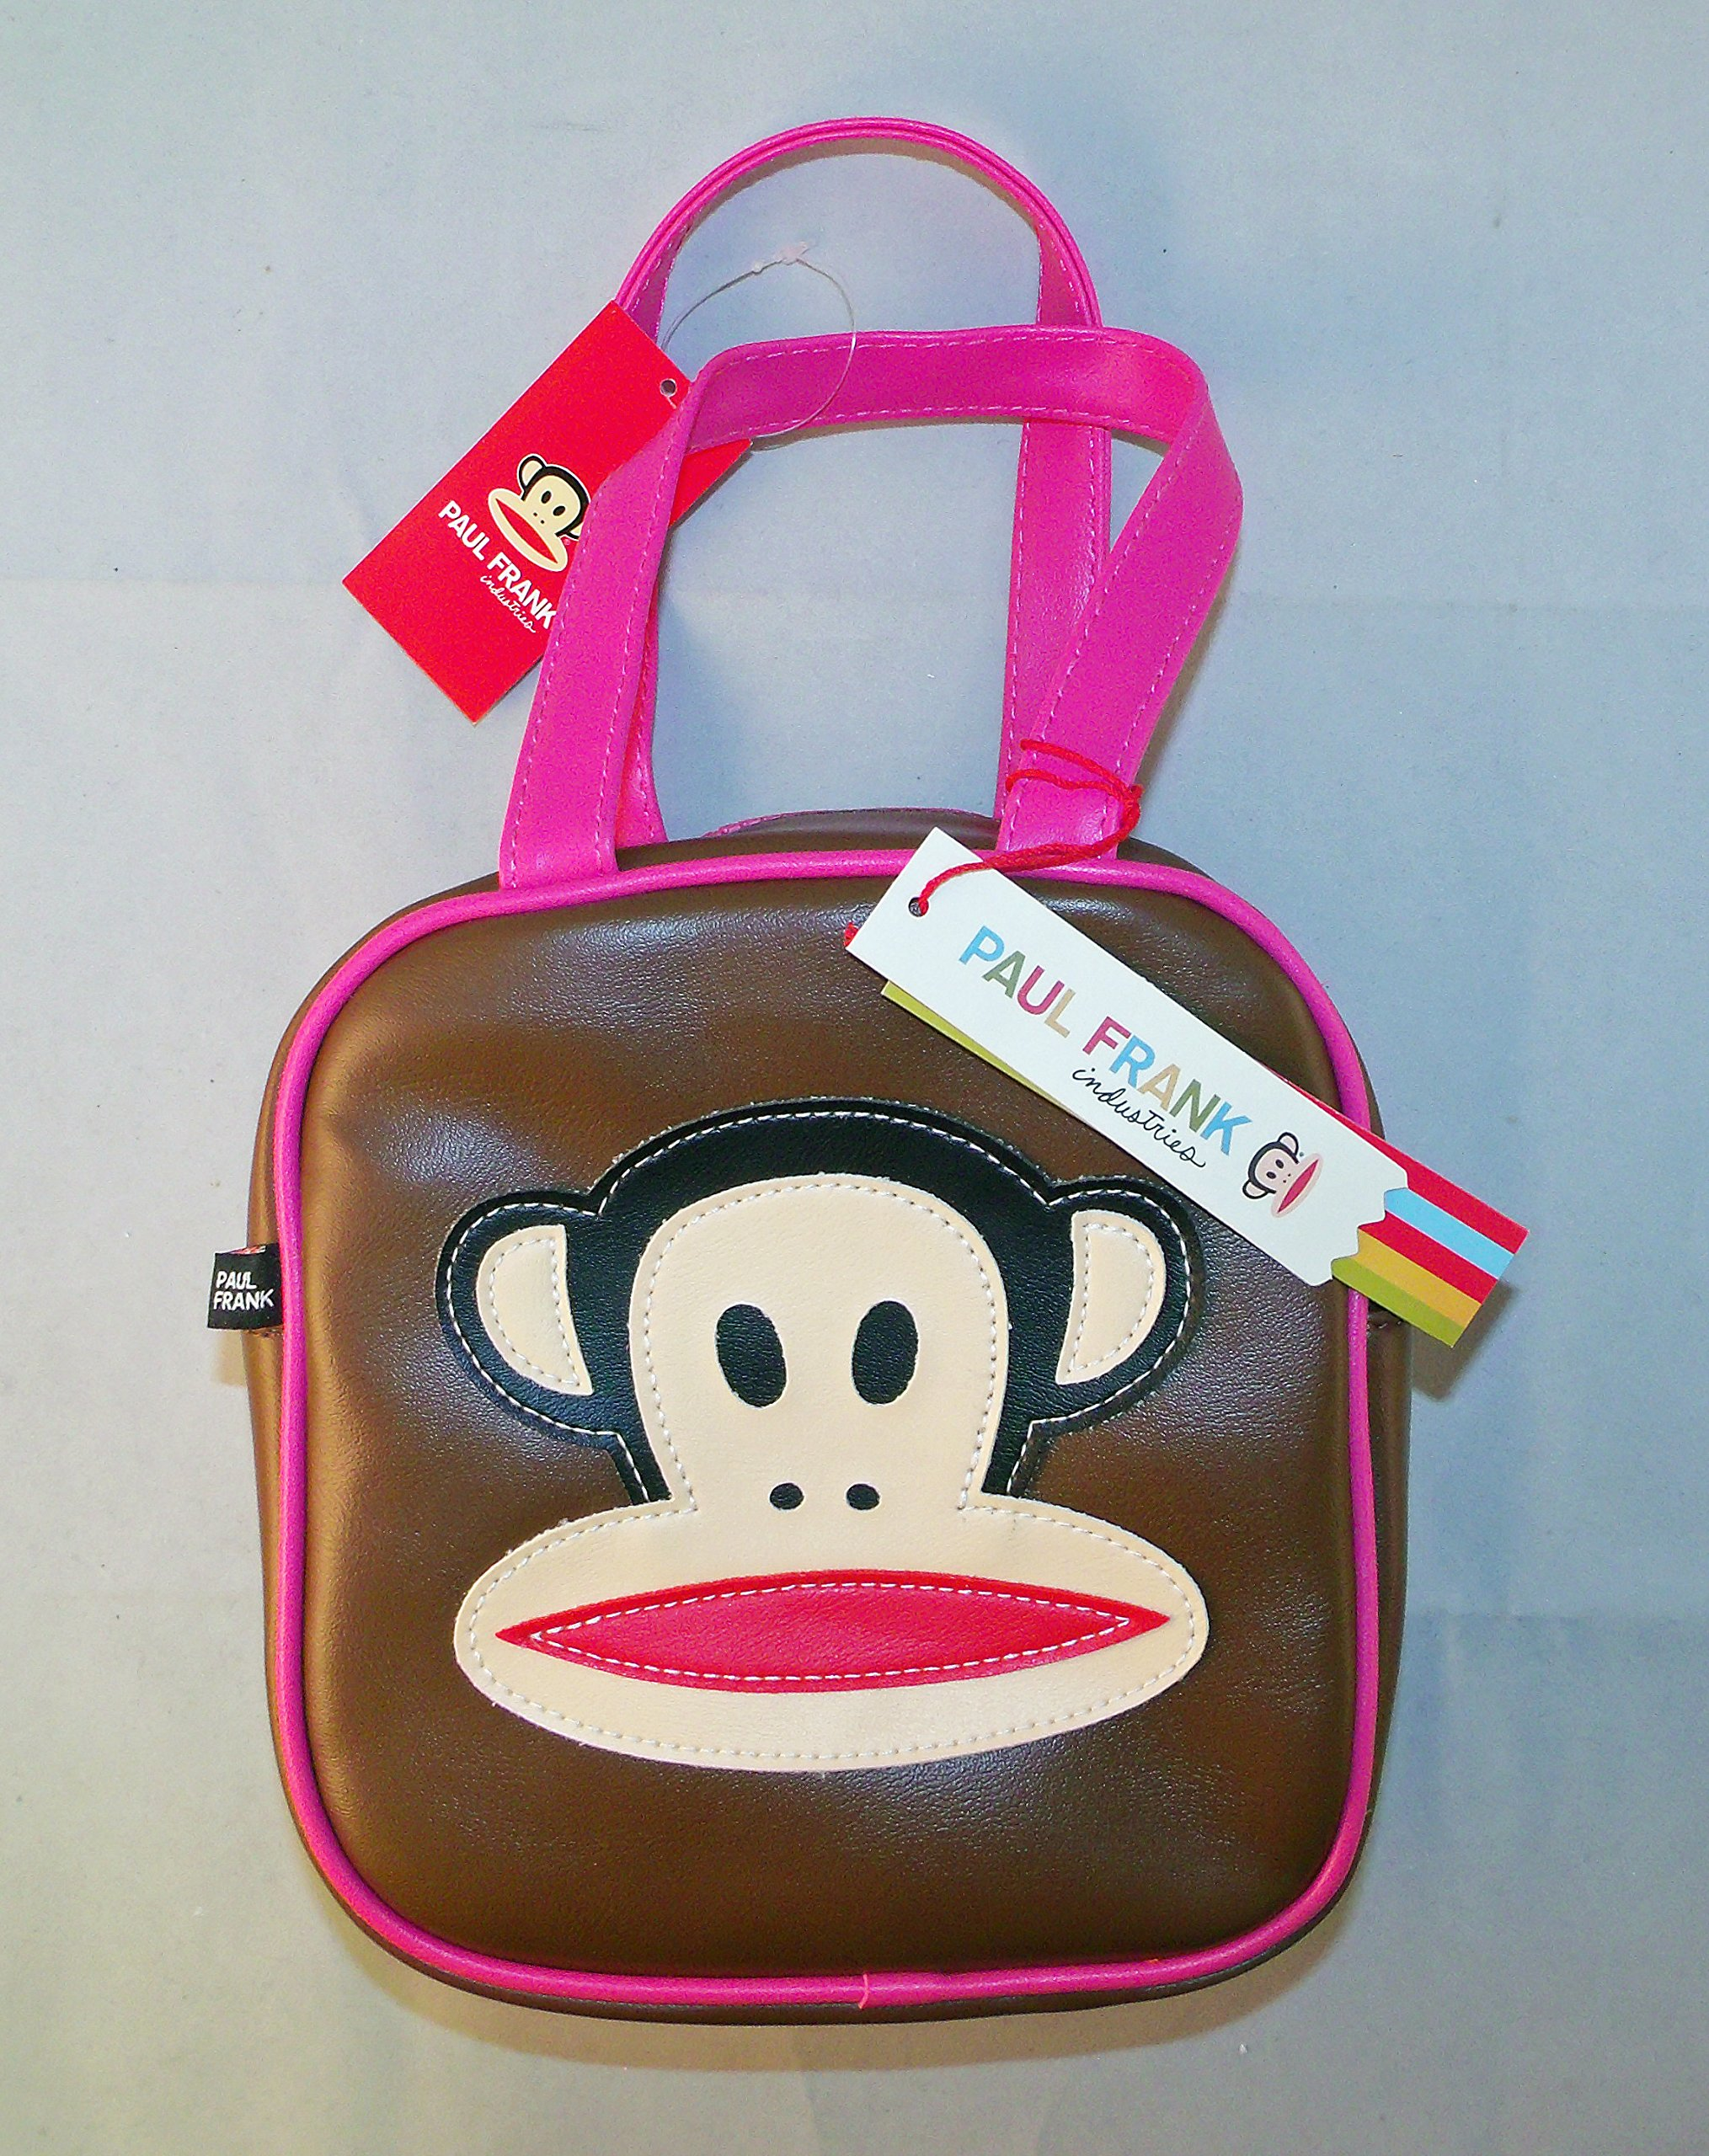 f2ec1075f6 Get Quotations · Paul Frank Monkey Square Bag - Brown with Bright Pink Trim